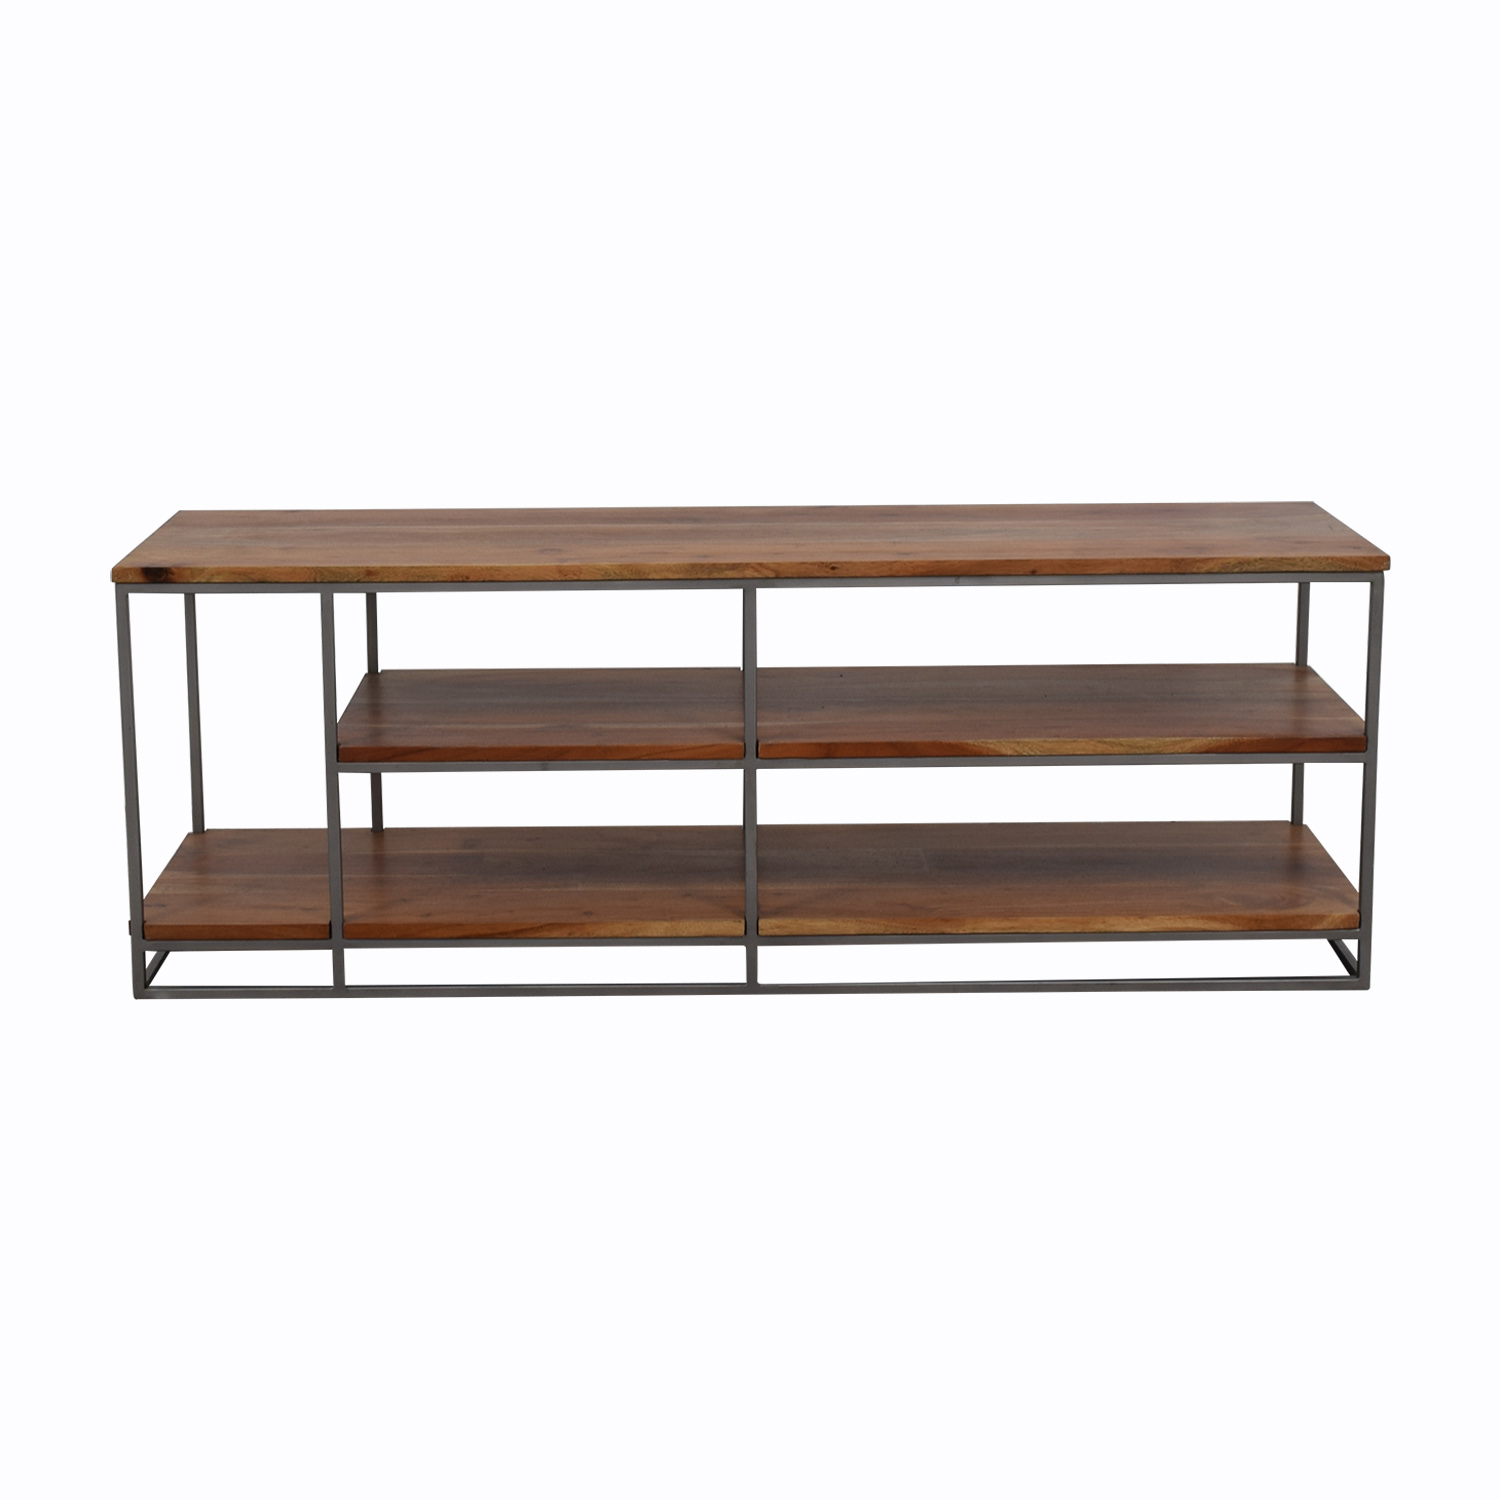 Crate & Barrel Crate & Barrel Wood and Wrought Iron Shelf and Media Center price